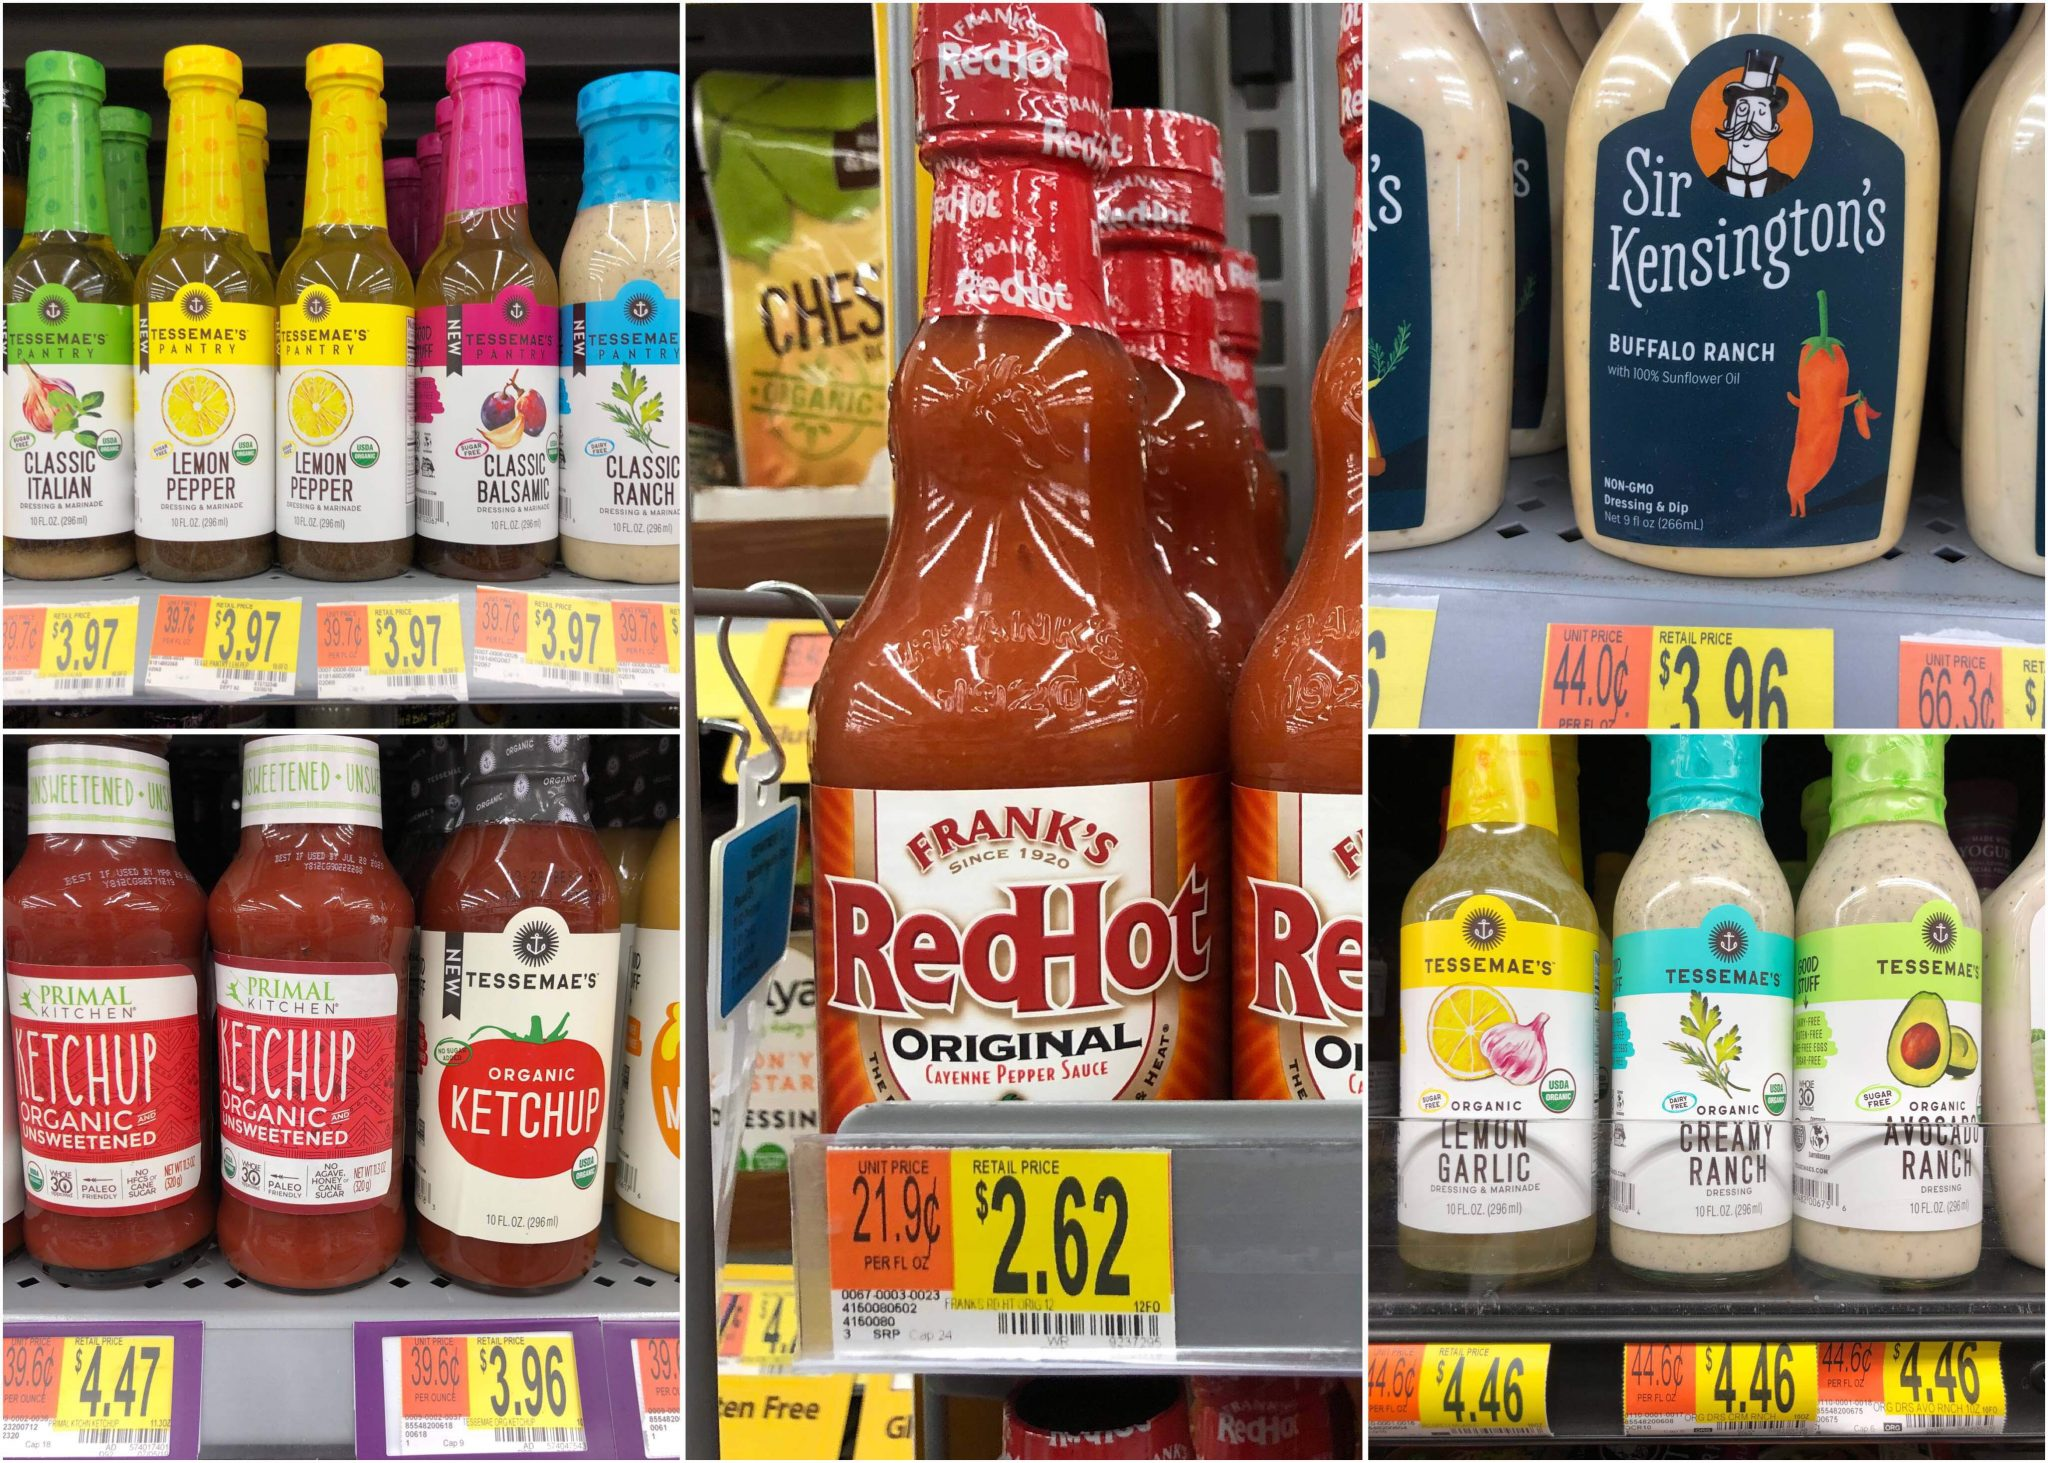 A collage of condiments